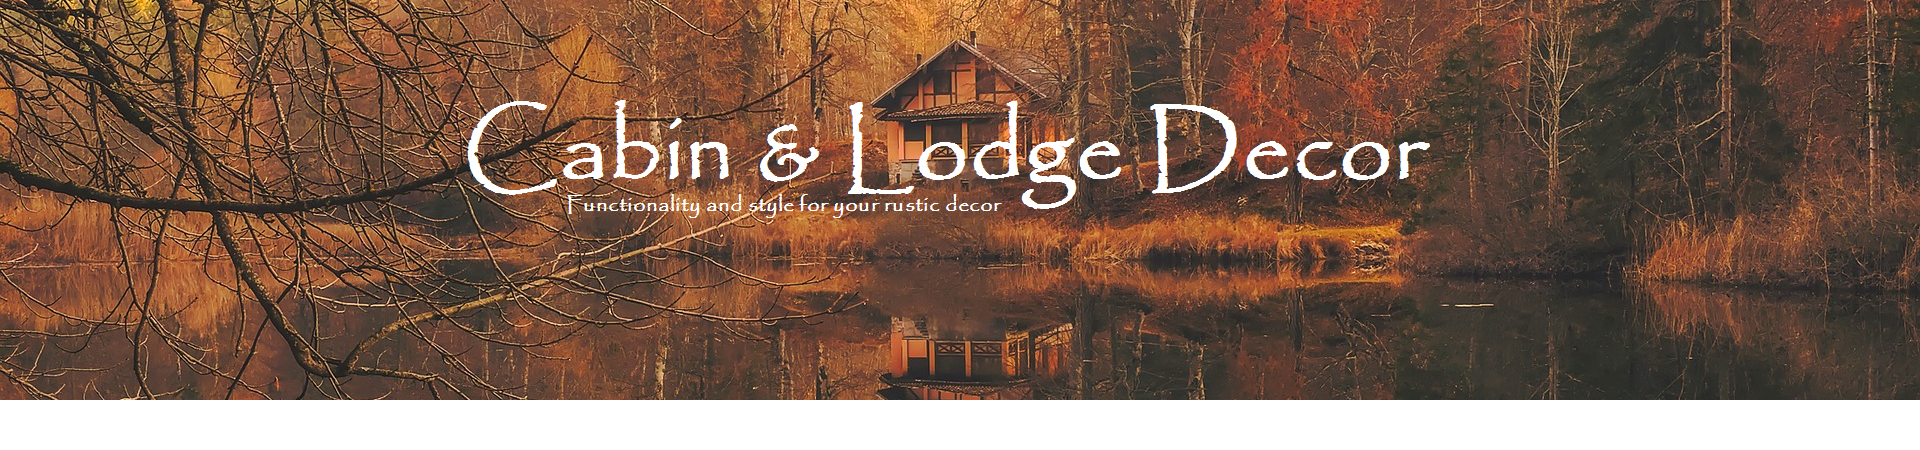 Cabin Lodge Decor